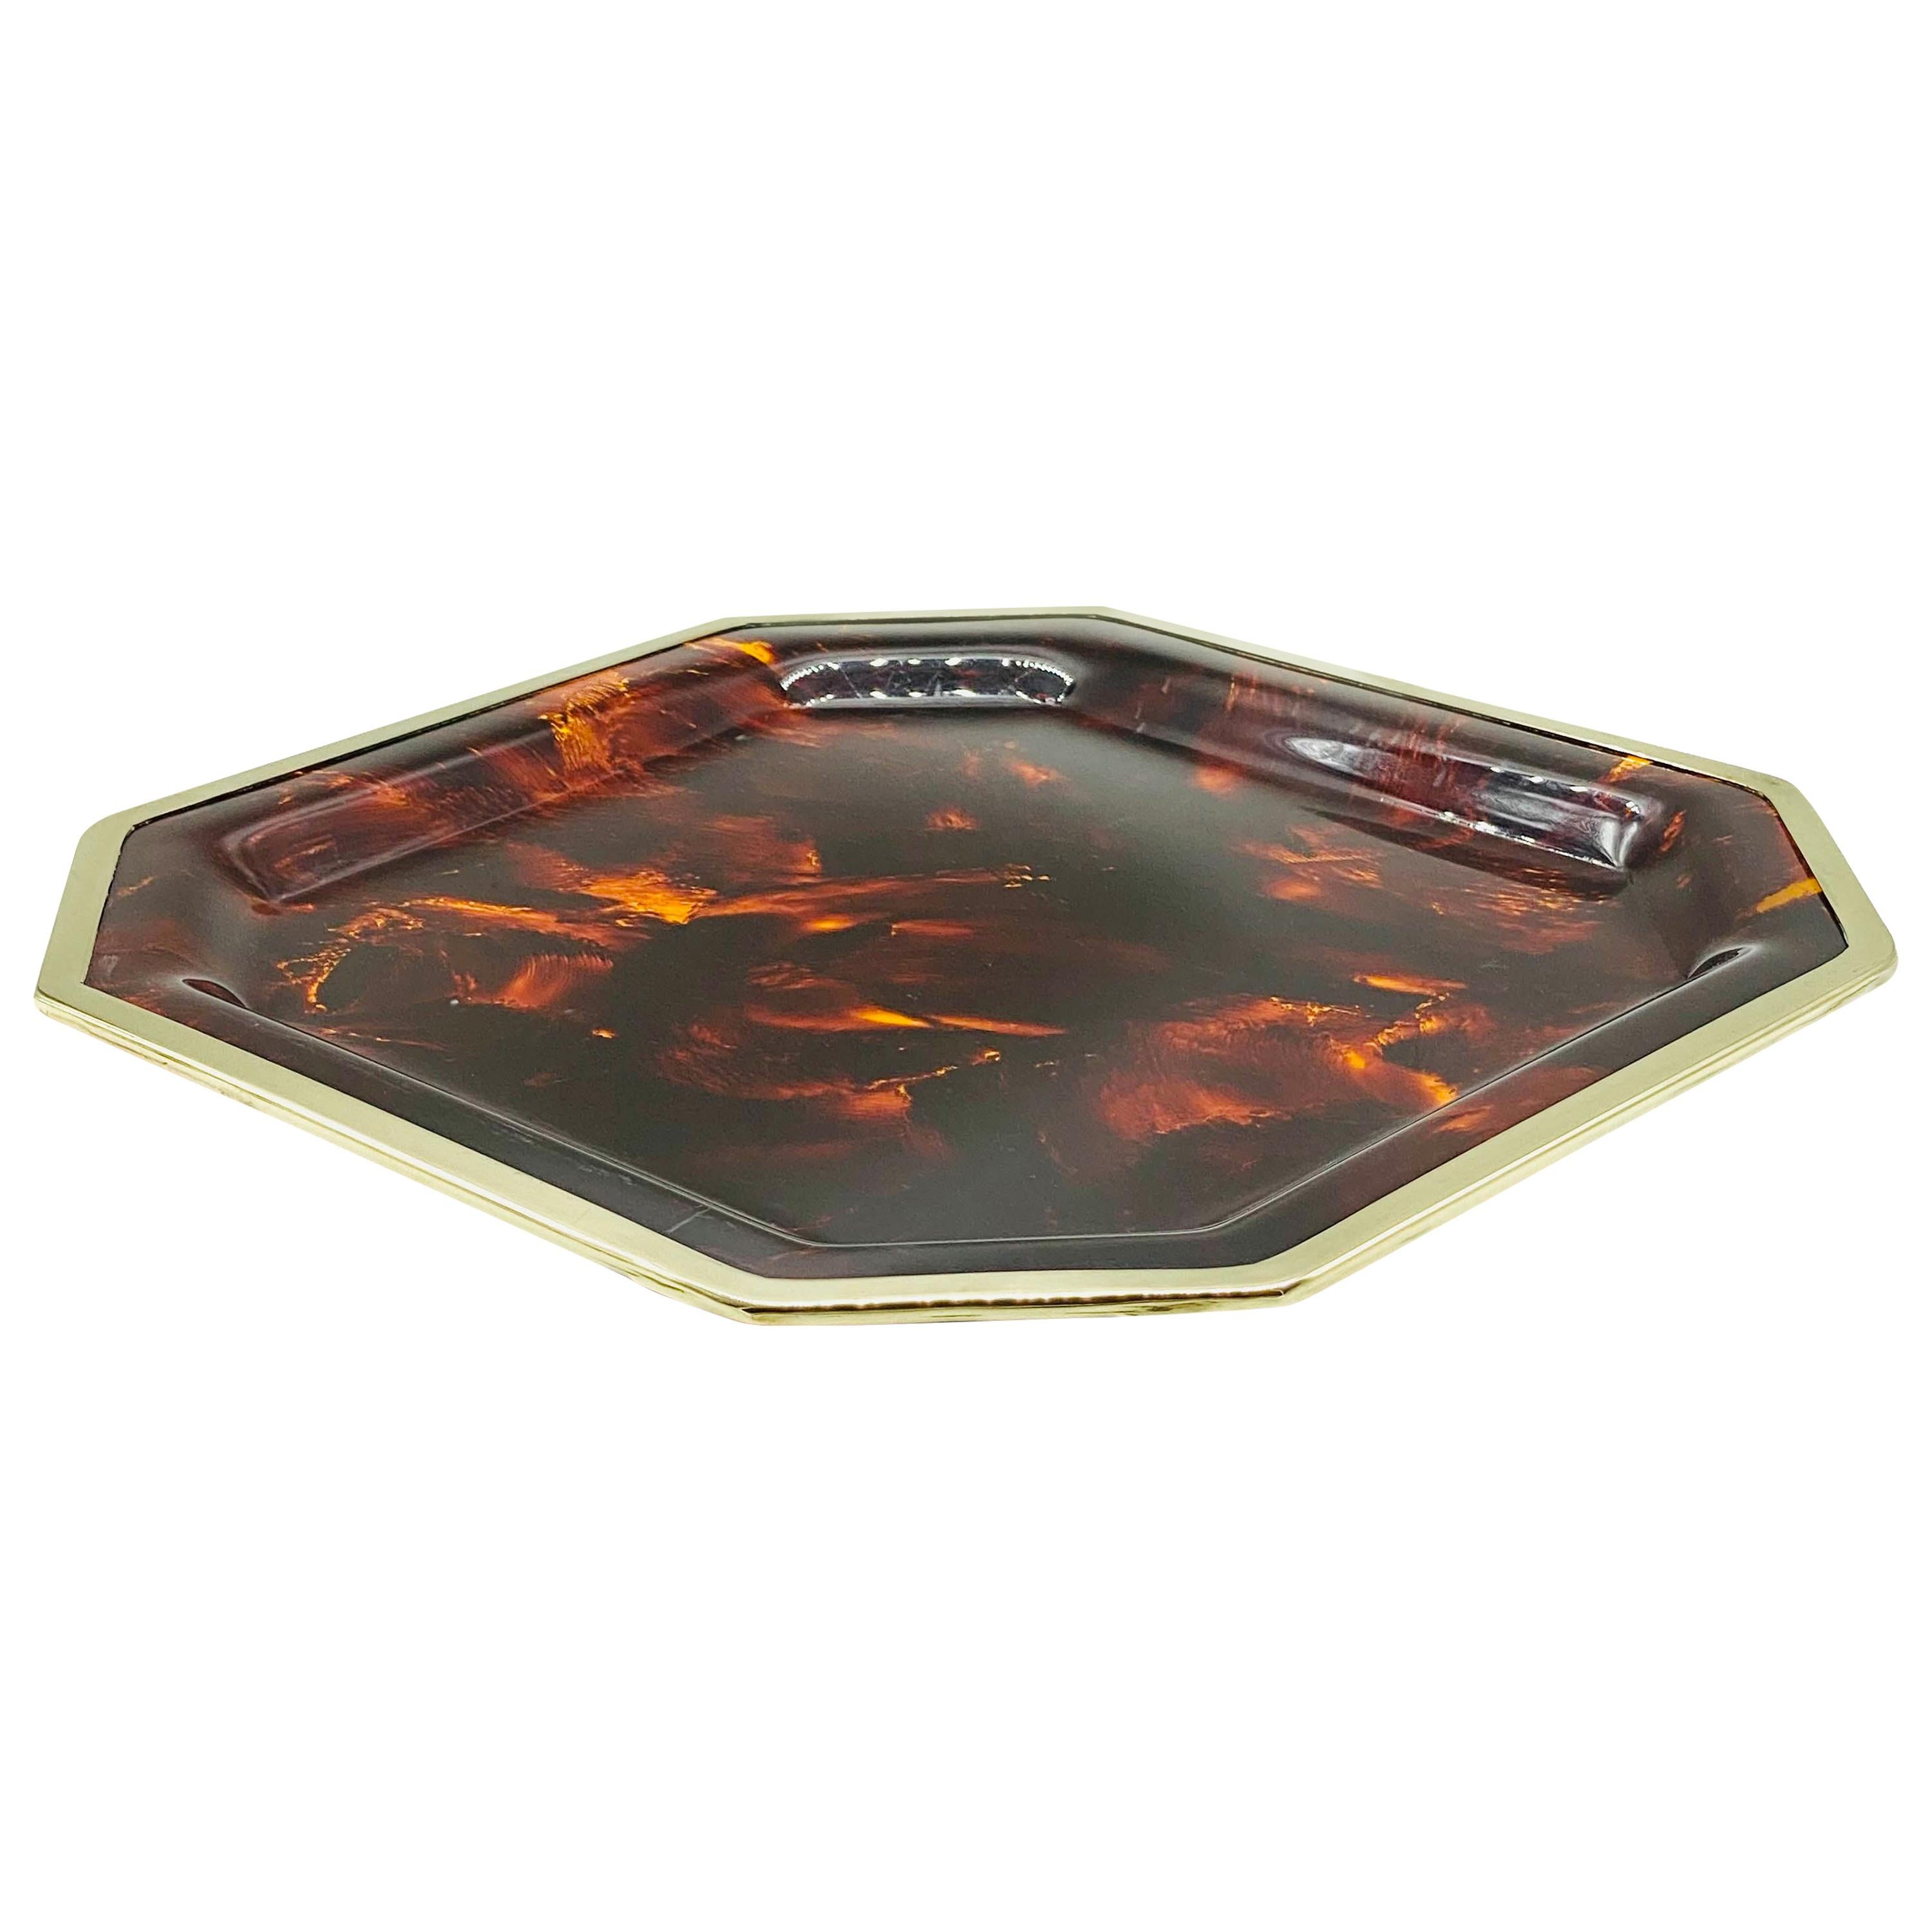 Christian Dior Brass and Faux Tortoise Octagonal Tray, 1970s